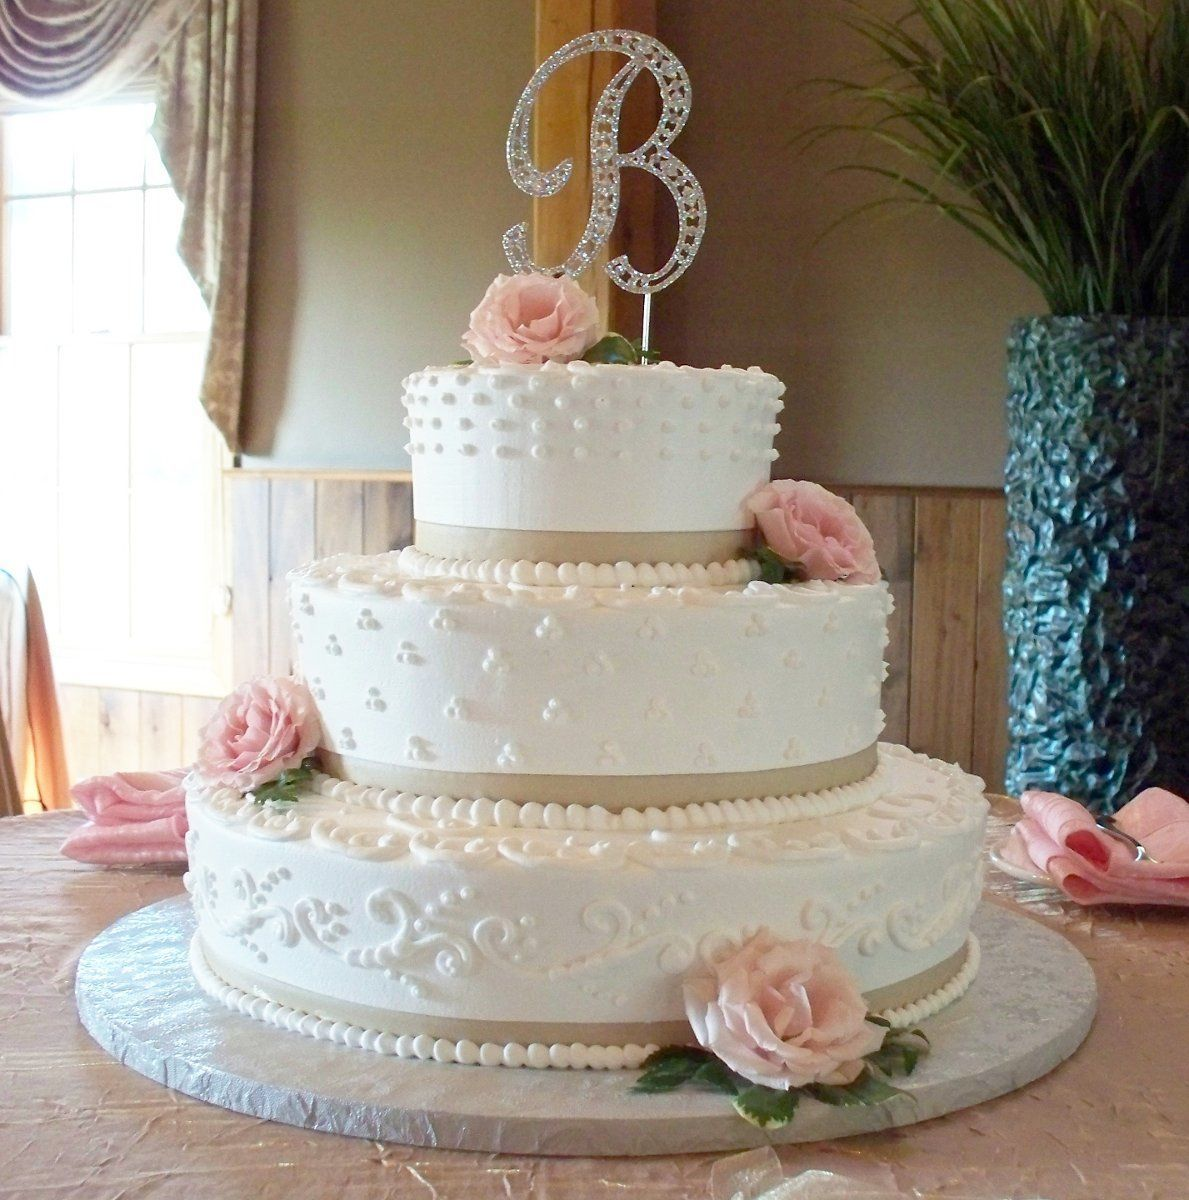 CAKES FOR ALL OCCASIONS Reviews - Templeton, MA - 24 Reviews